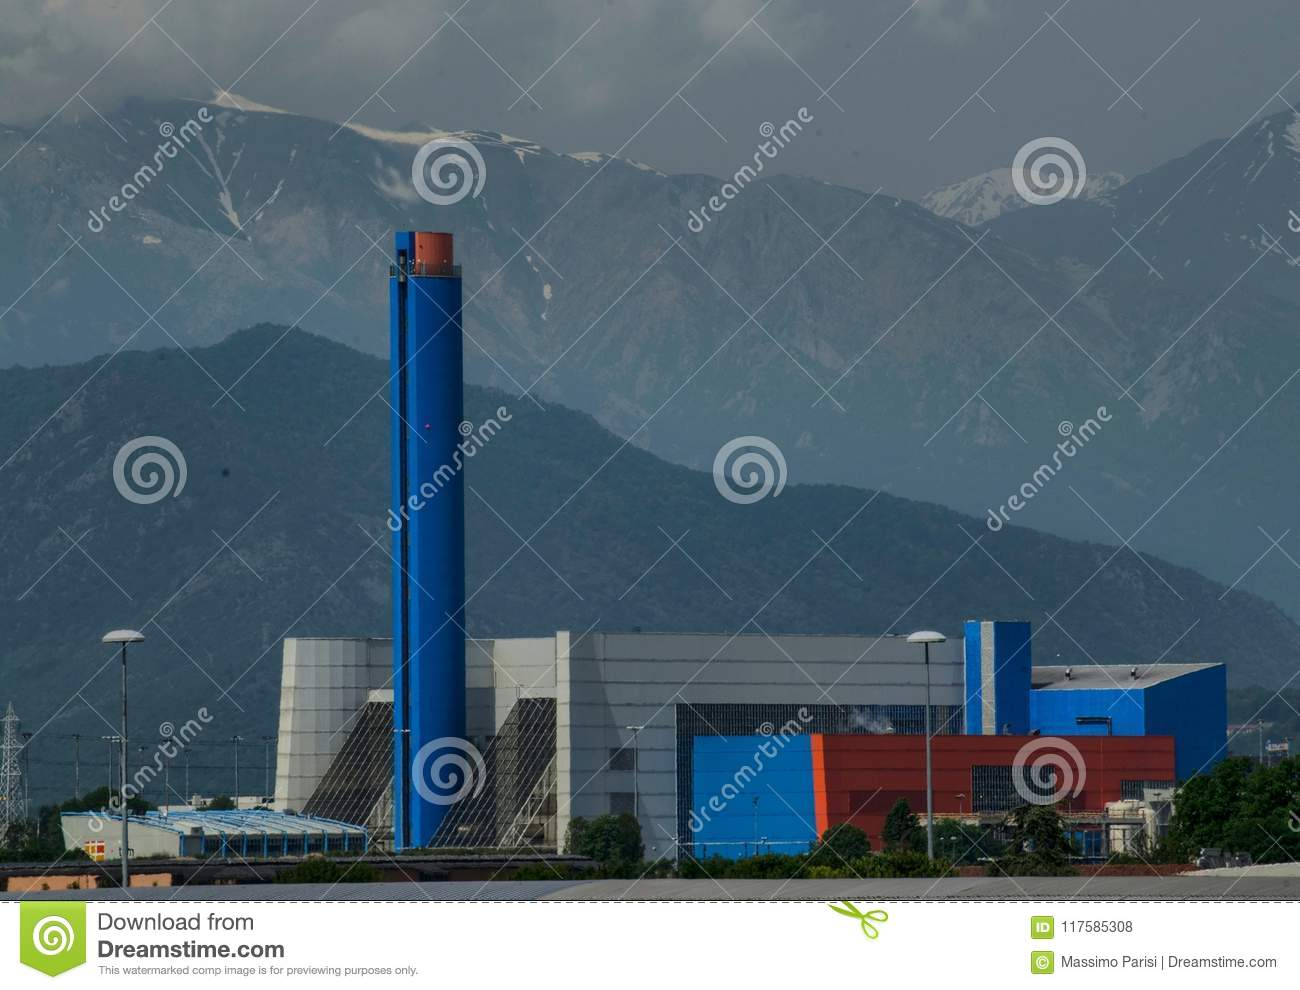 Turin, Gerbido, Piedmont Italy 27 May 2018. The waste-to-energy plant of the company TRM-IREN GROUP